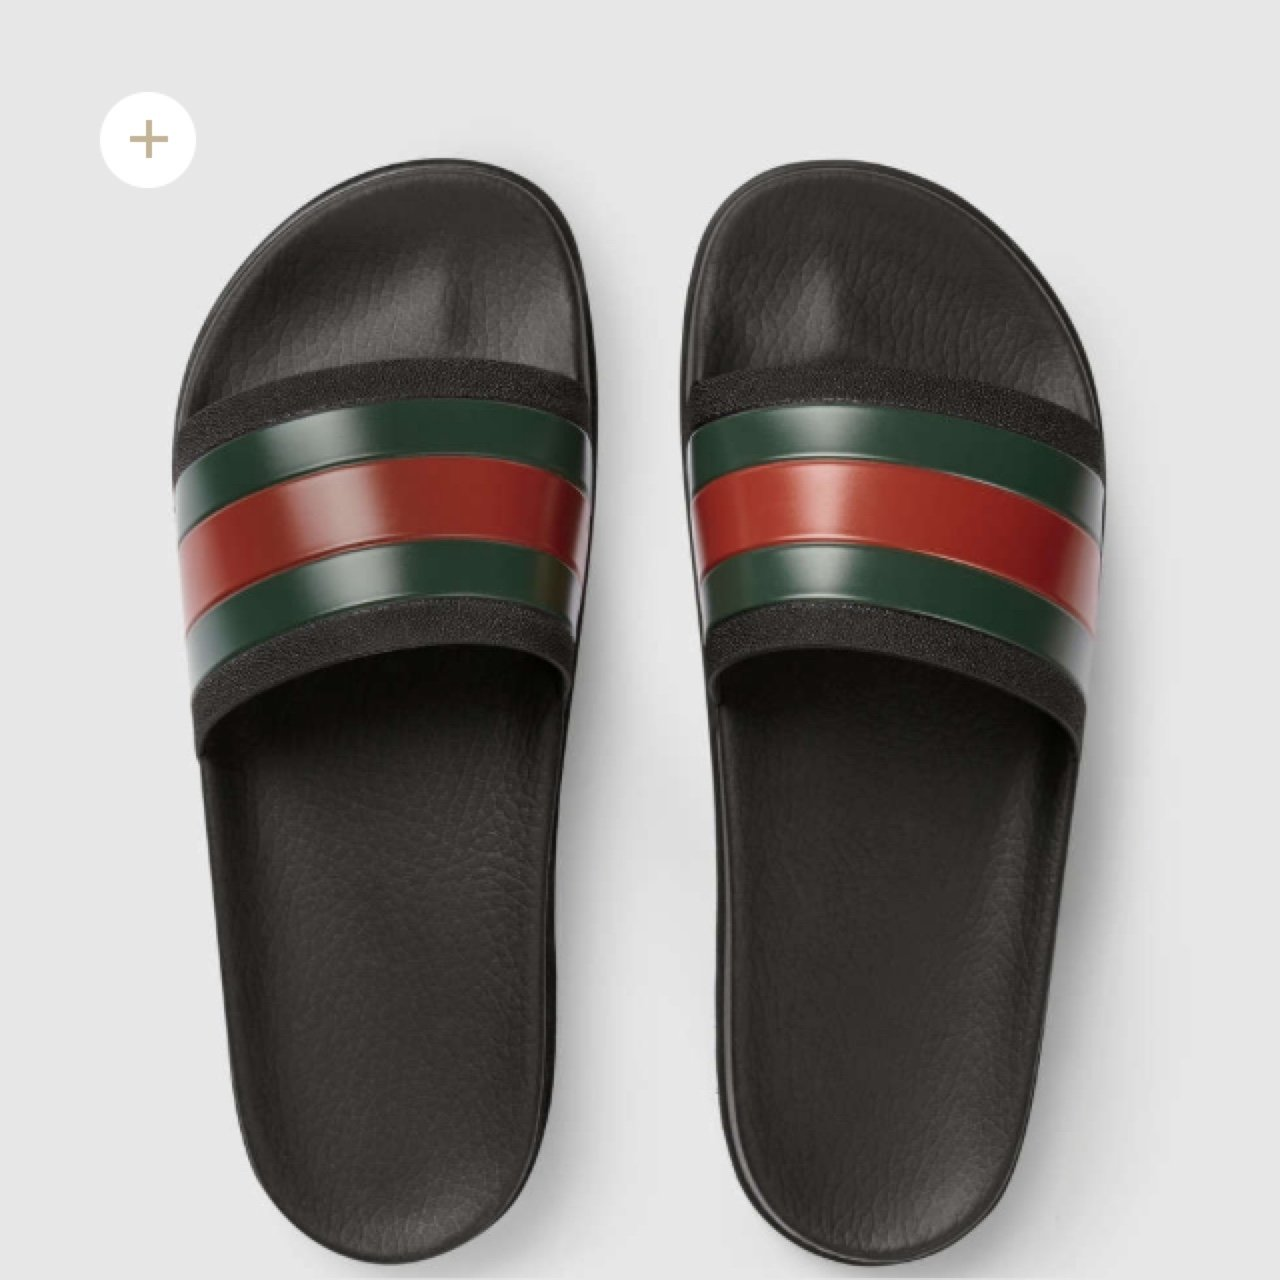 aaf66a72ae7a69 Gucci slide sliders flip flops. Size 6. Sold out everywhere - Depop